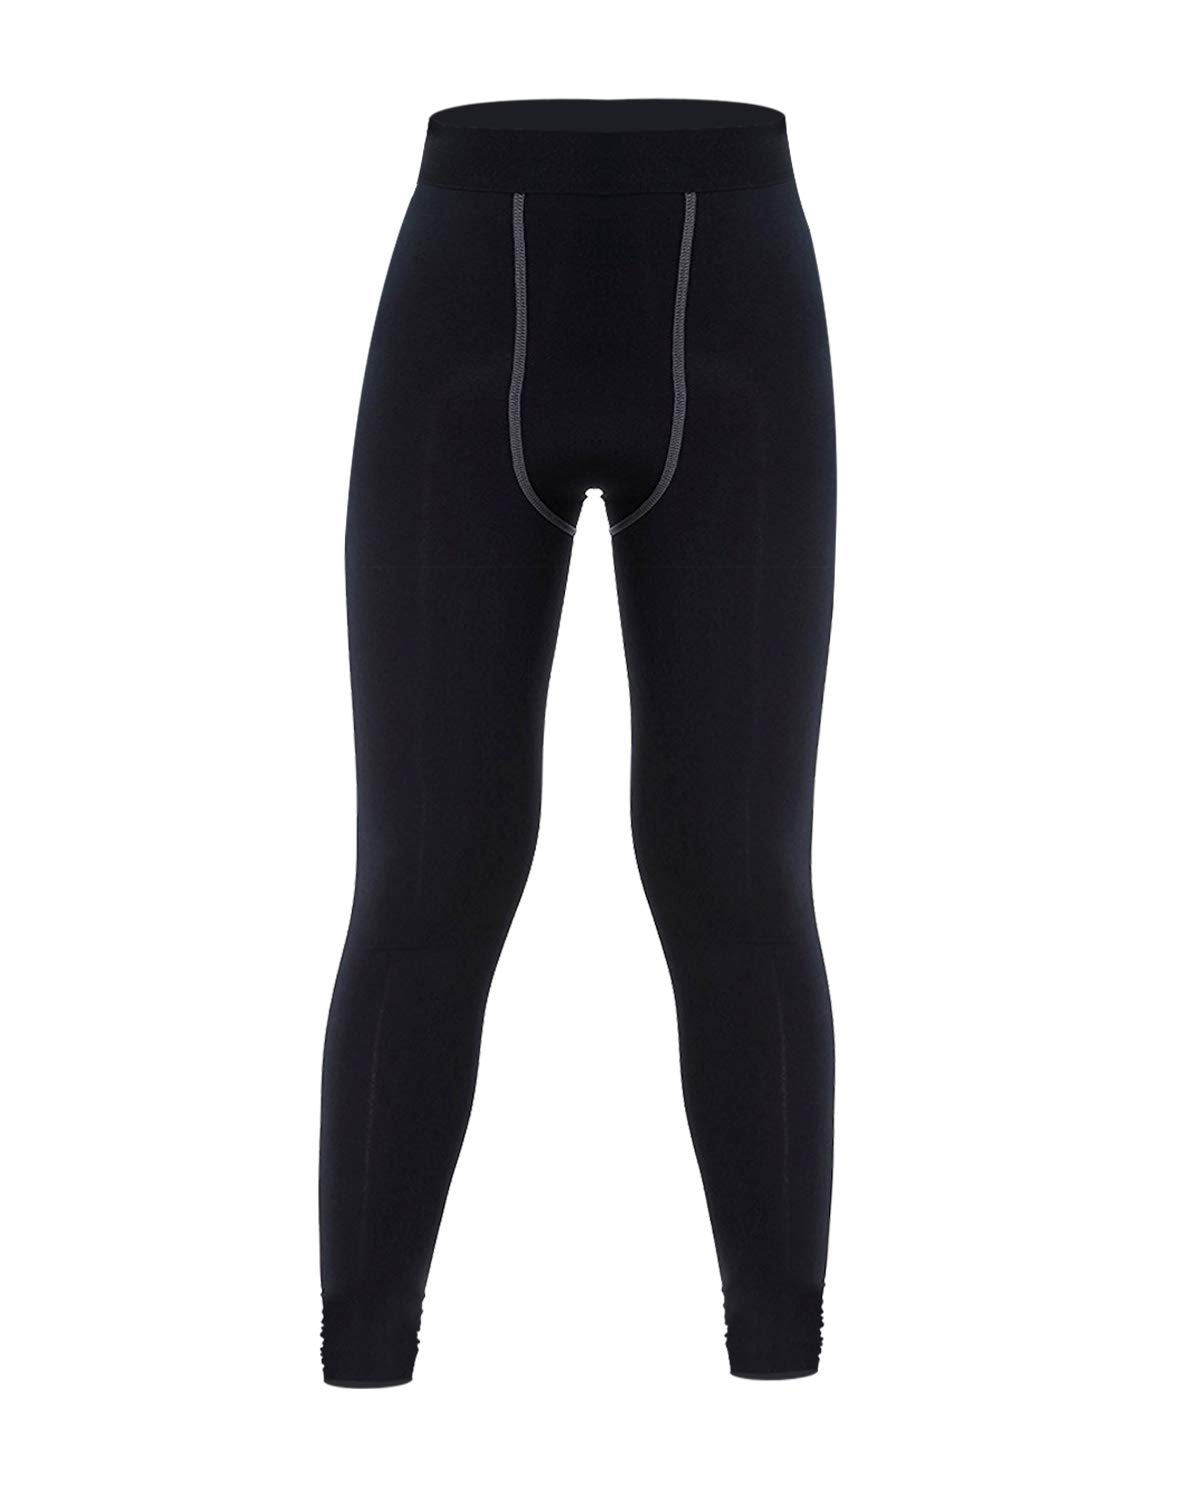 LNJLVI Boys & Girls Compression Pants Sports Base Layer Legging/Tights (Black-Gray-1, 5) by LNJLVI